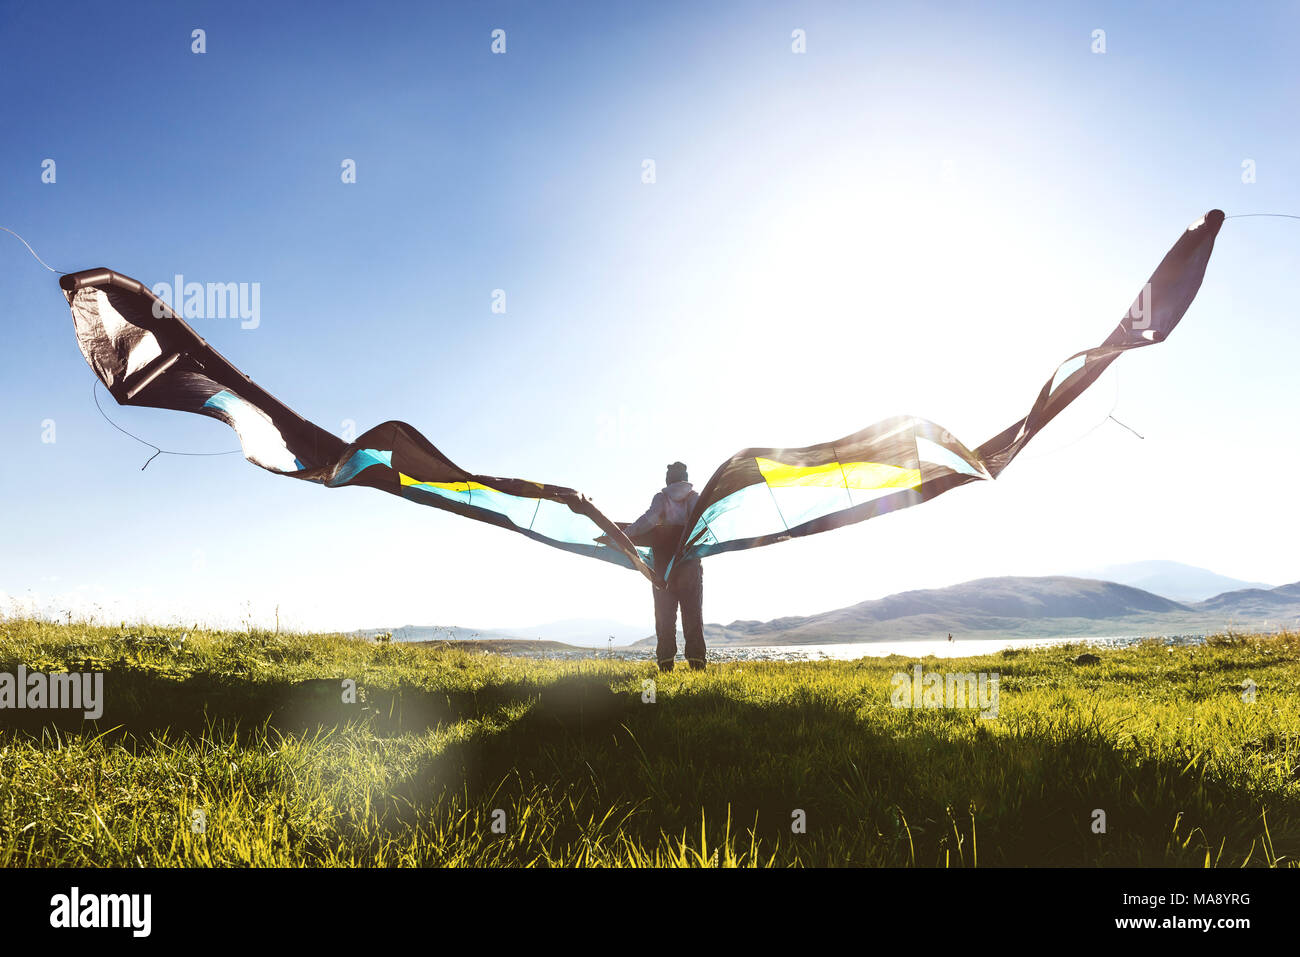 Man woman stands with kite in sun light - Stock Image